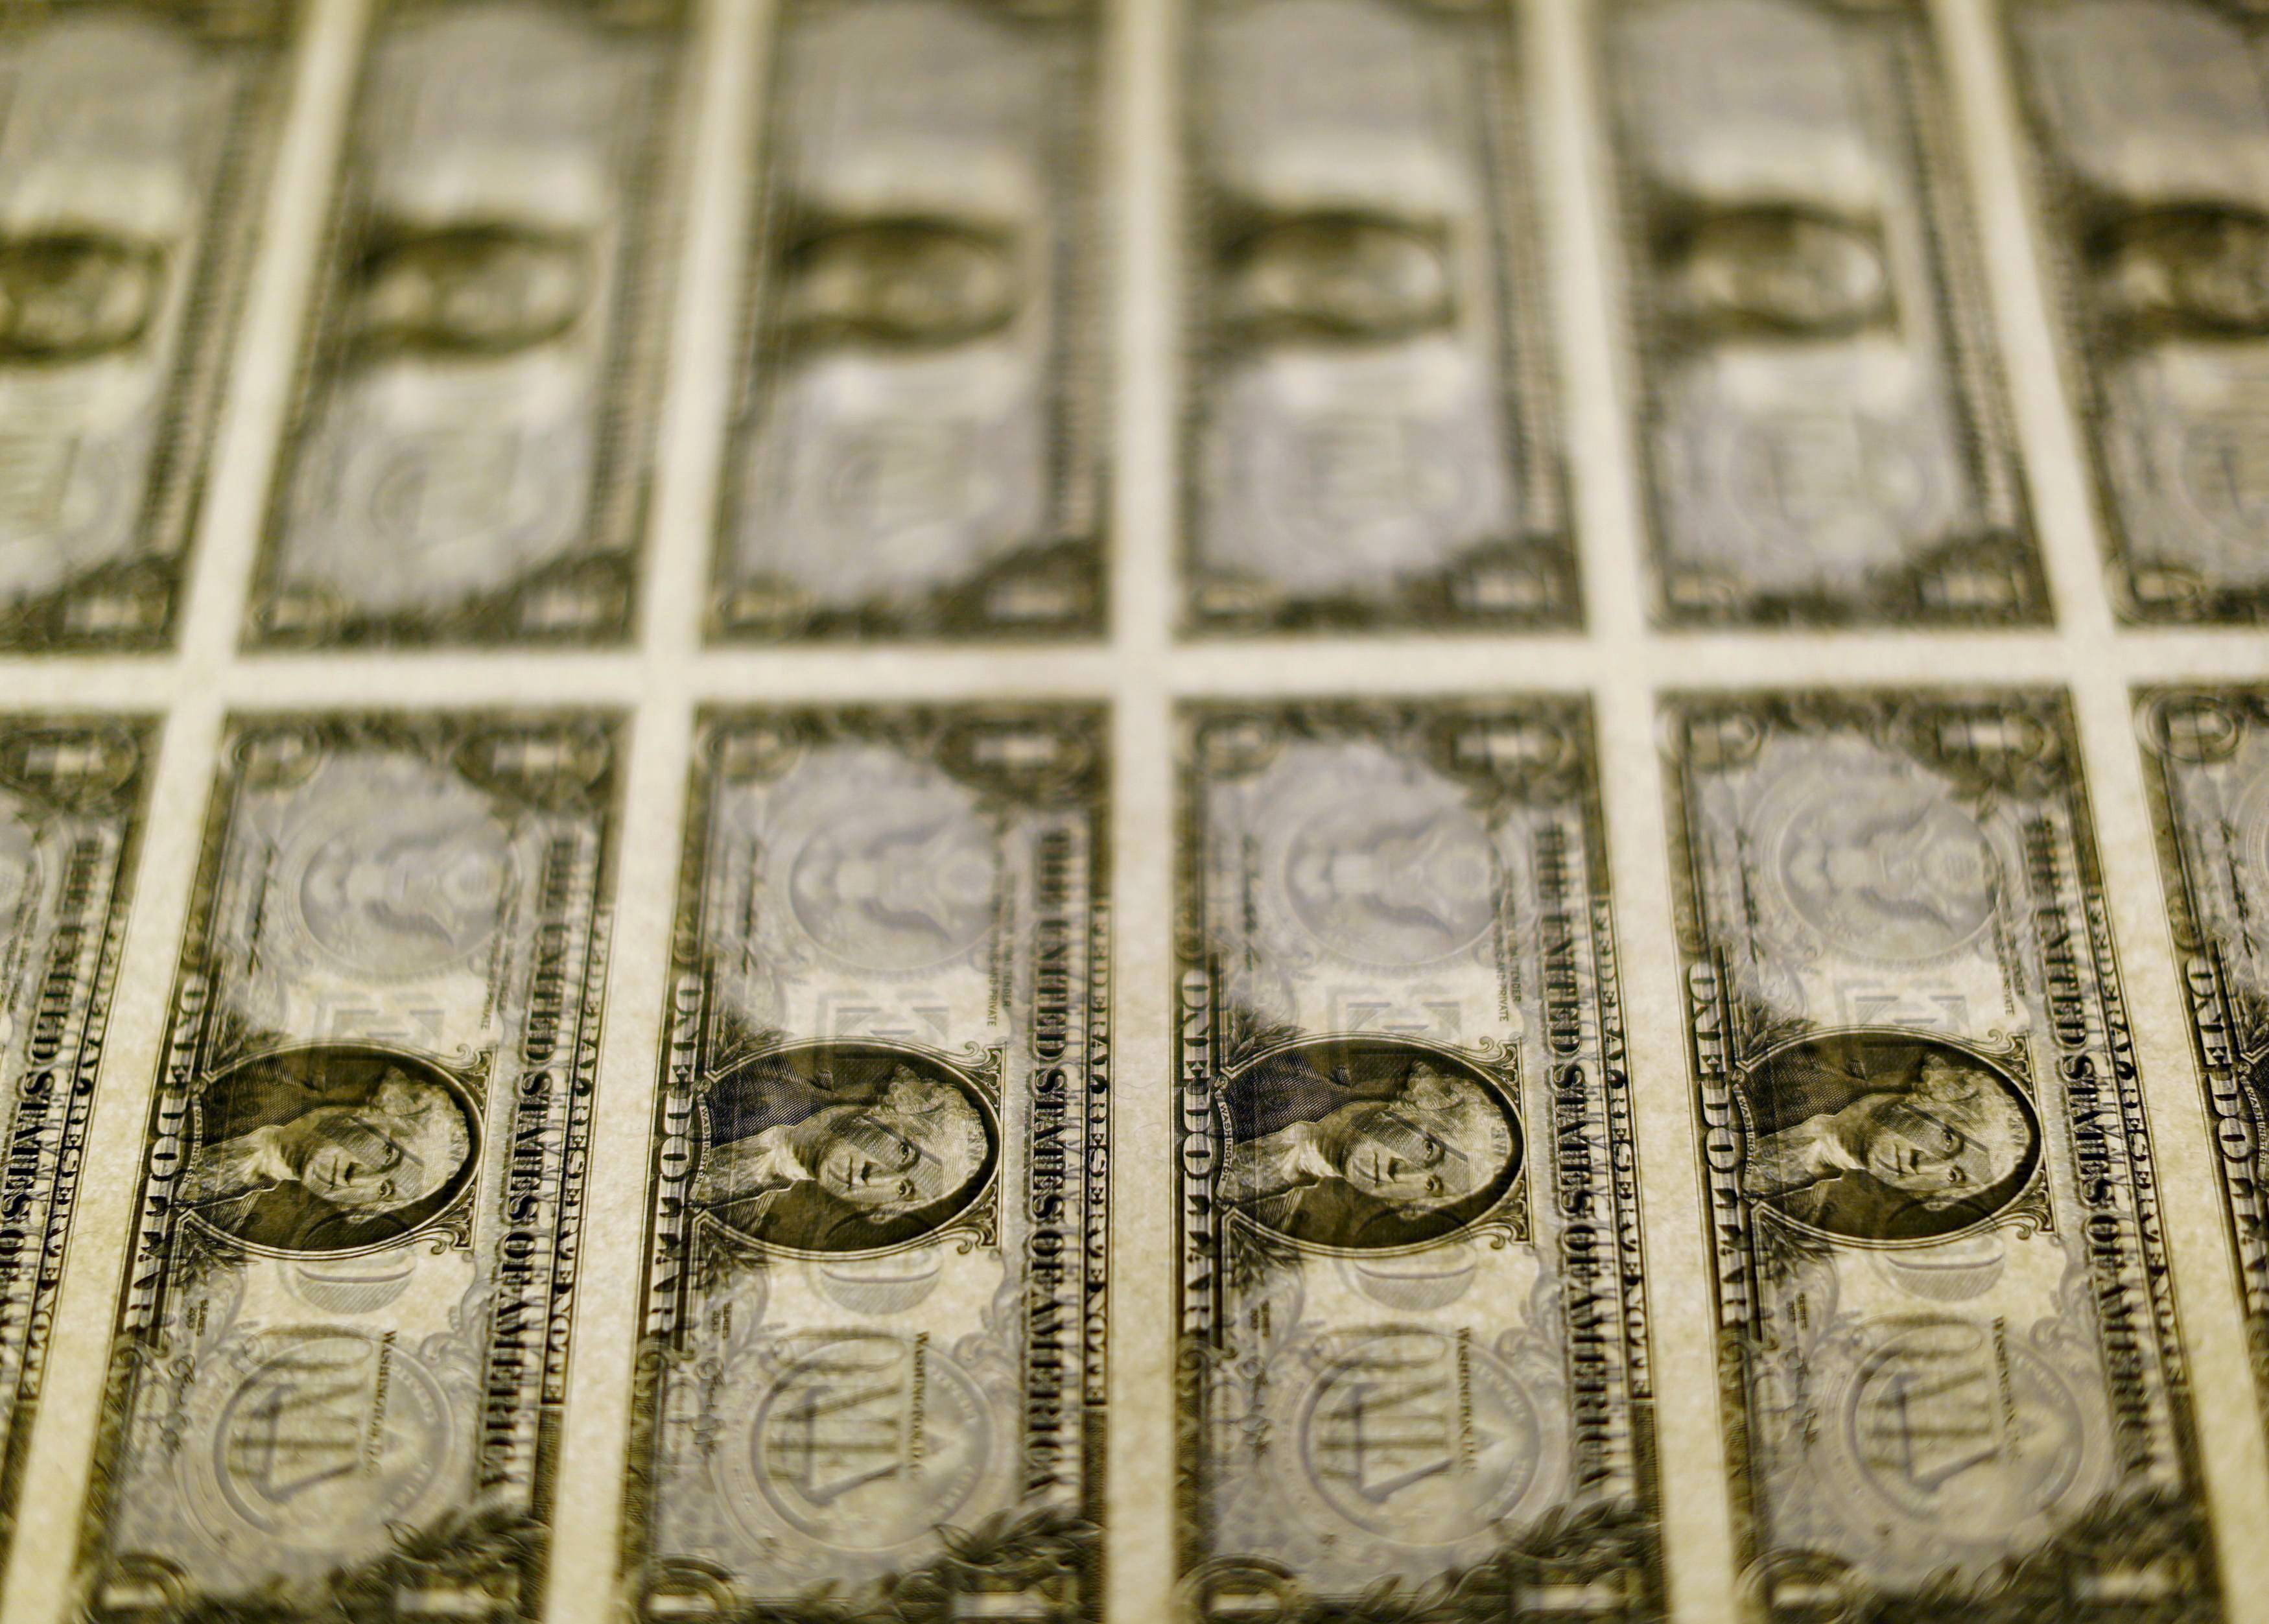 United States one dollar bills are seen on a light table at the Bureau of Engraving and Printing in Washington November 14, 2014. REUTERS/Gary Cameron